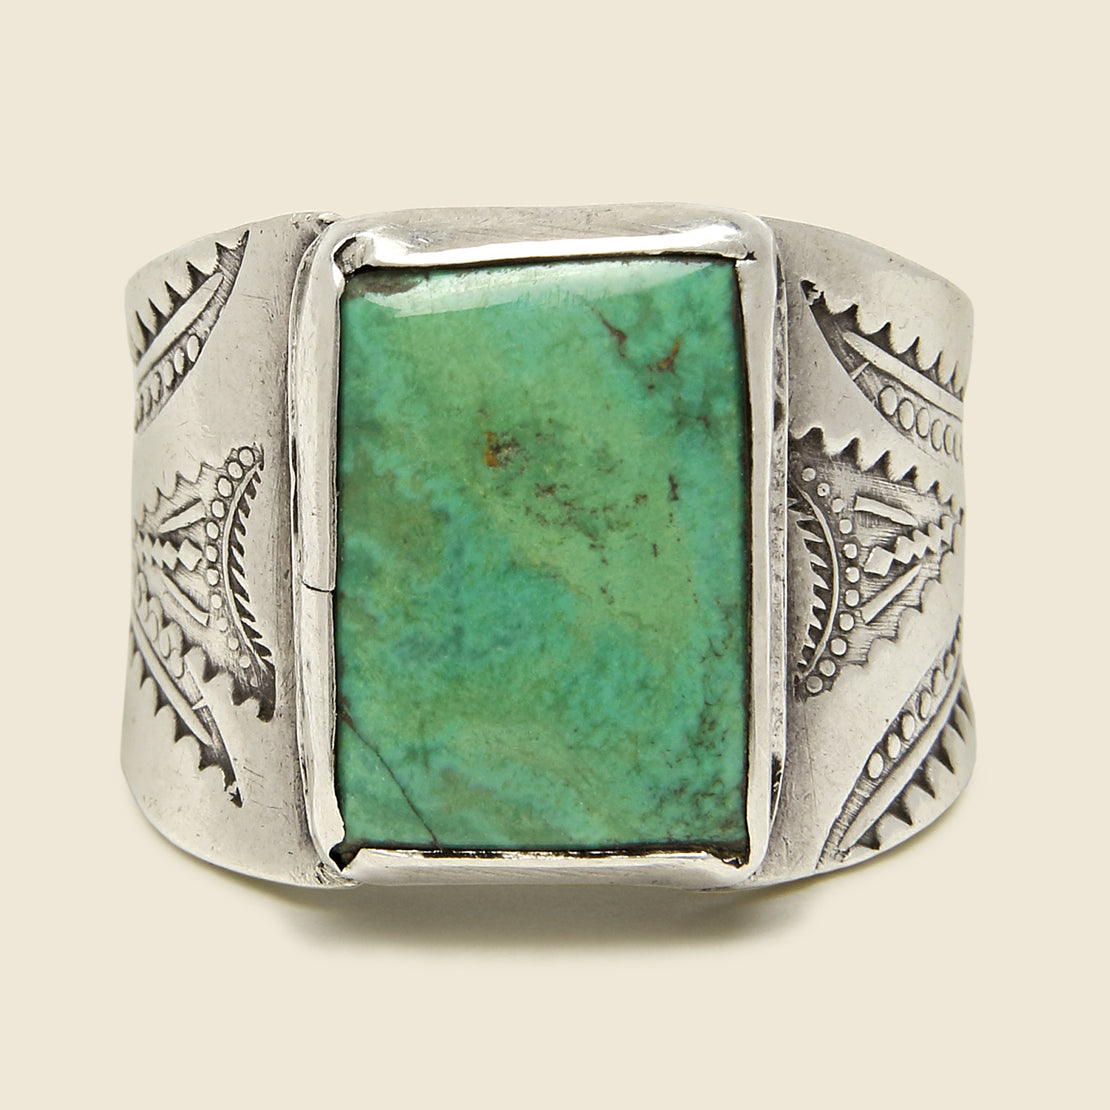 Vintage - Rectangular Turquoise & Stamped Sterling Silver Cigar Band Ring, OAD